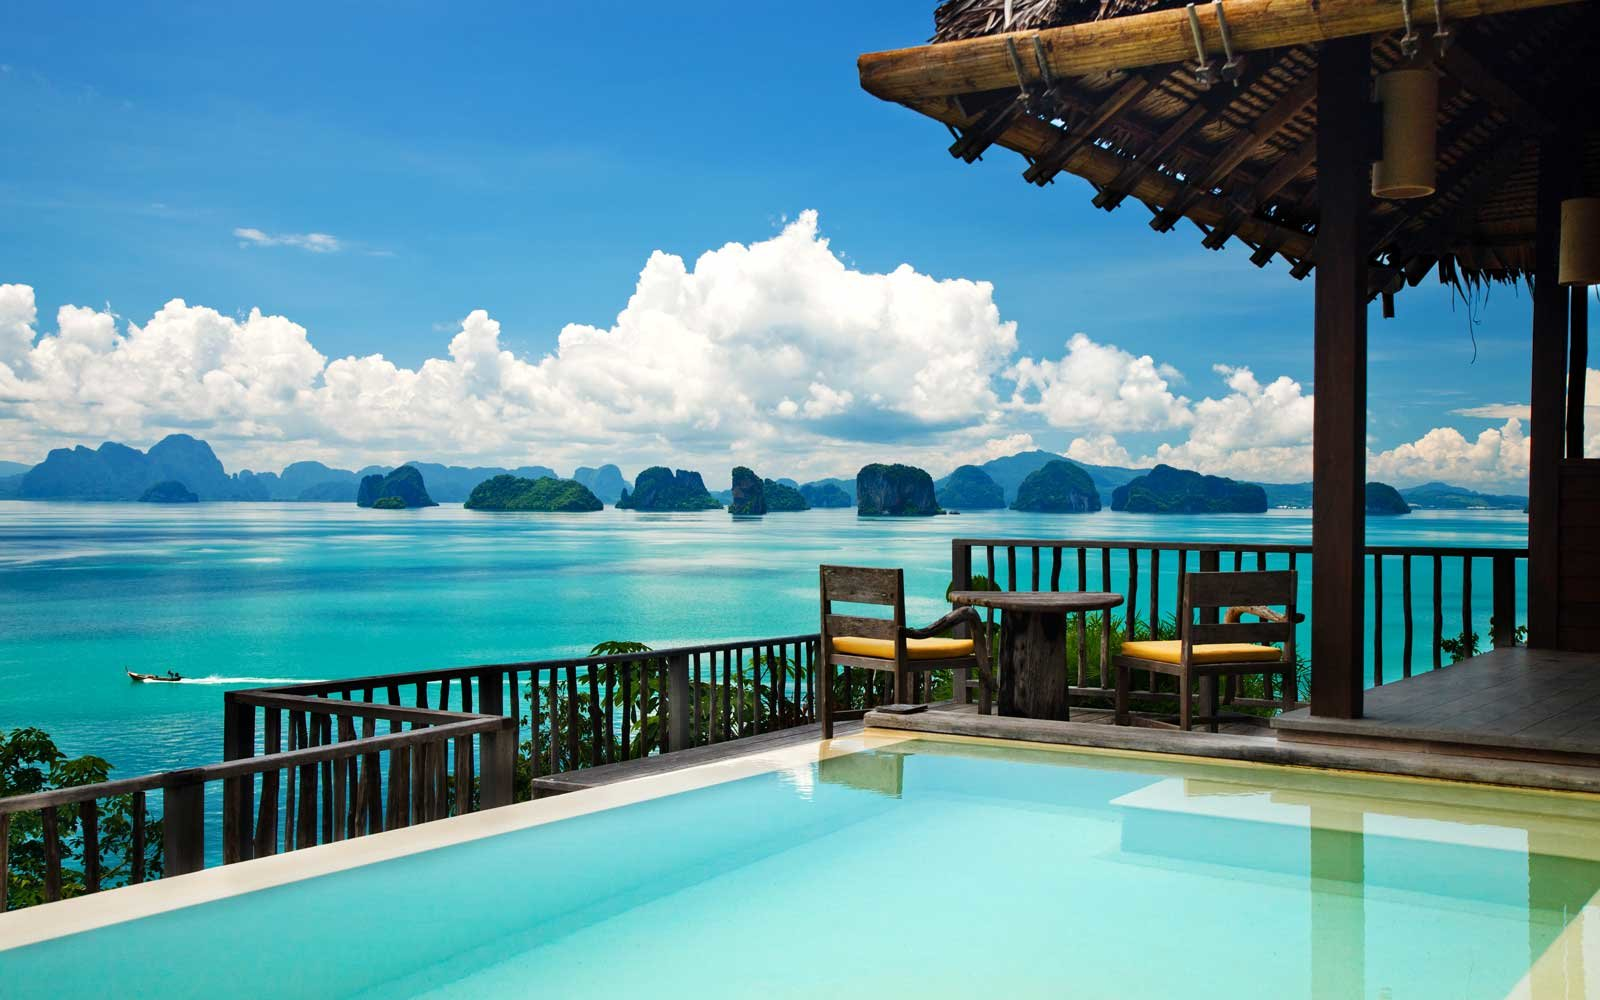 Top Romantic Hotels: Six Senses Yao Noi